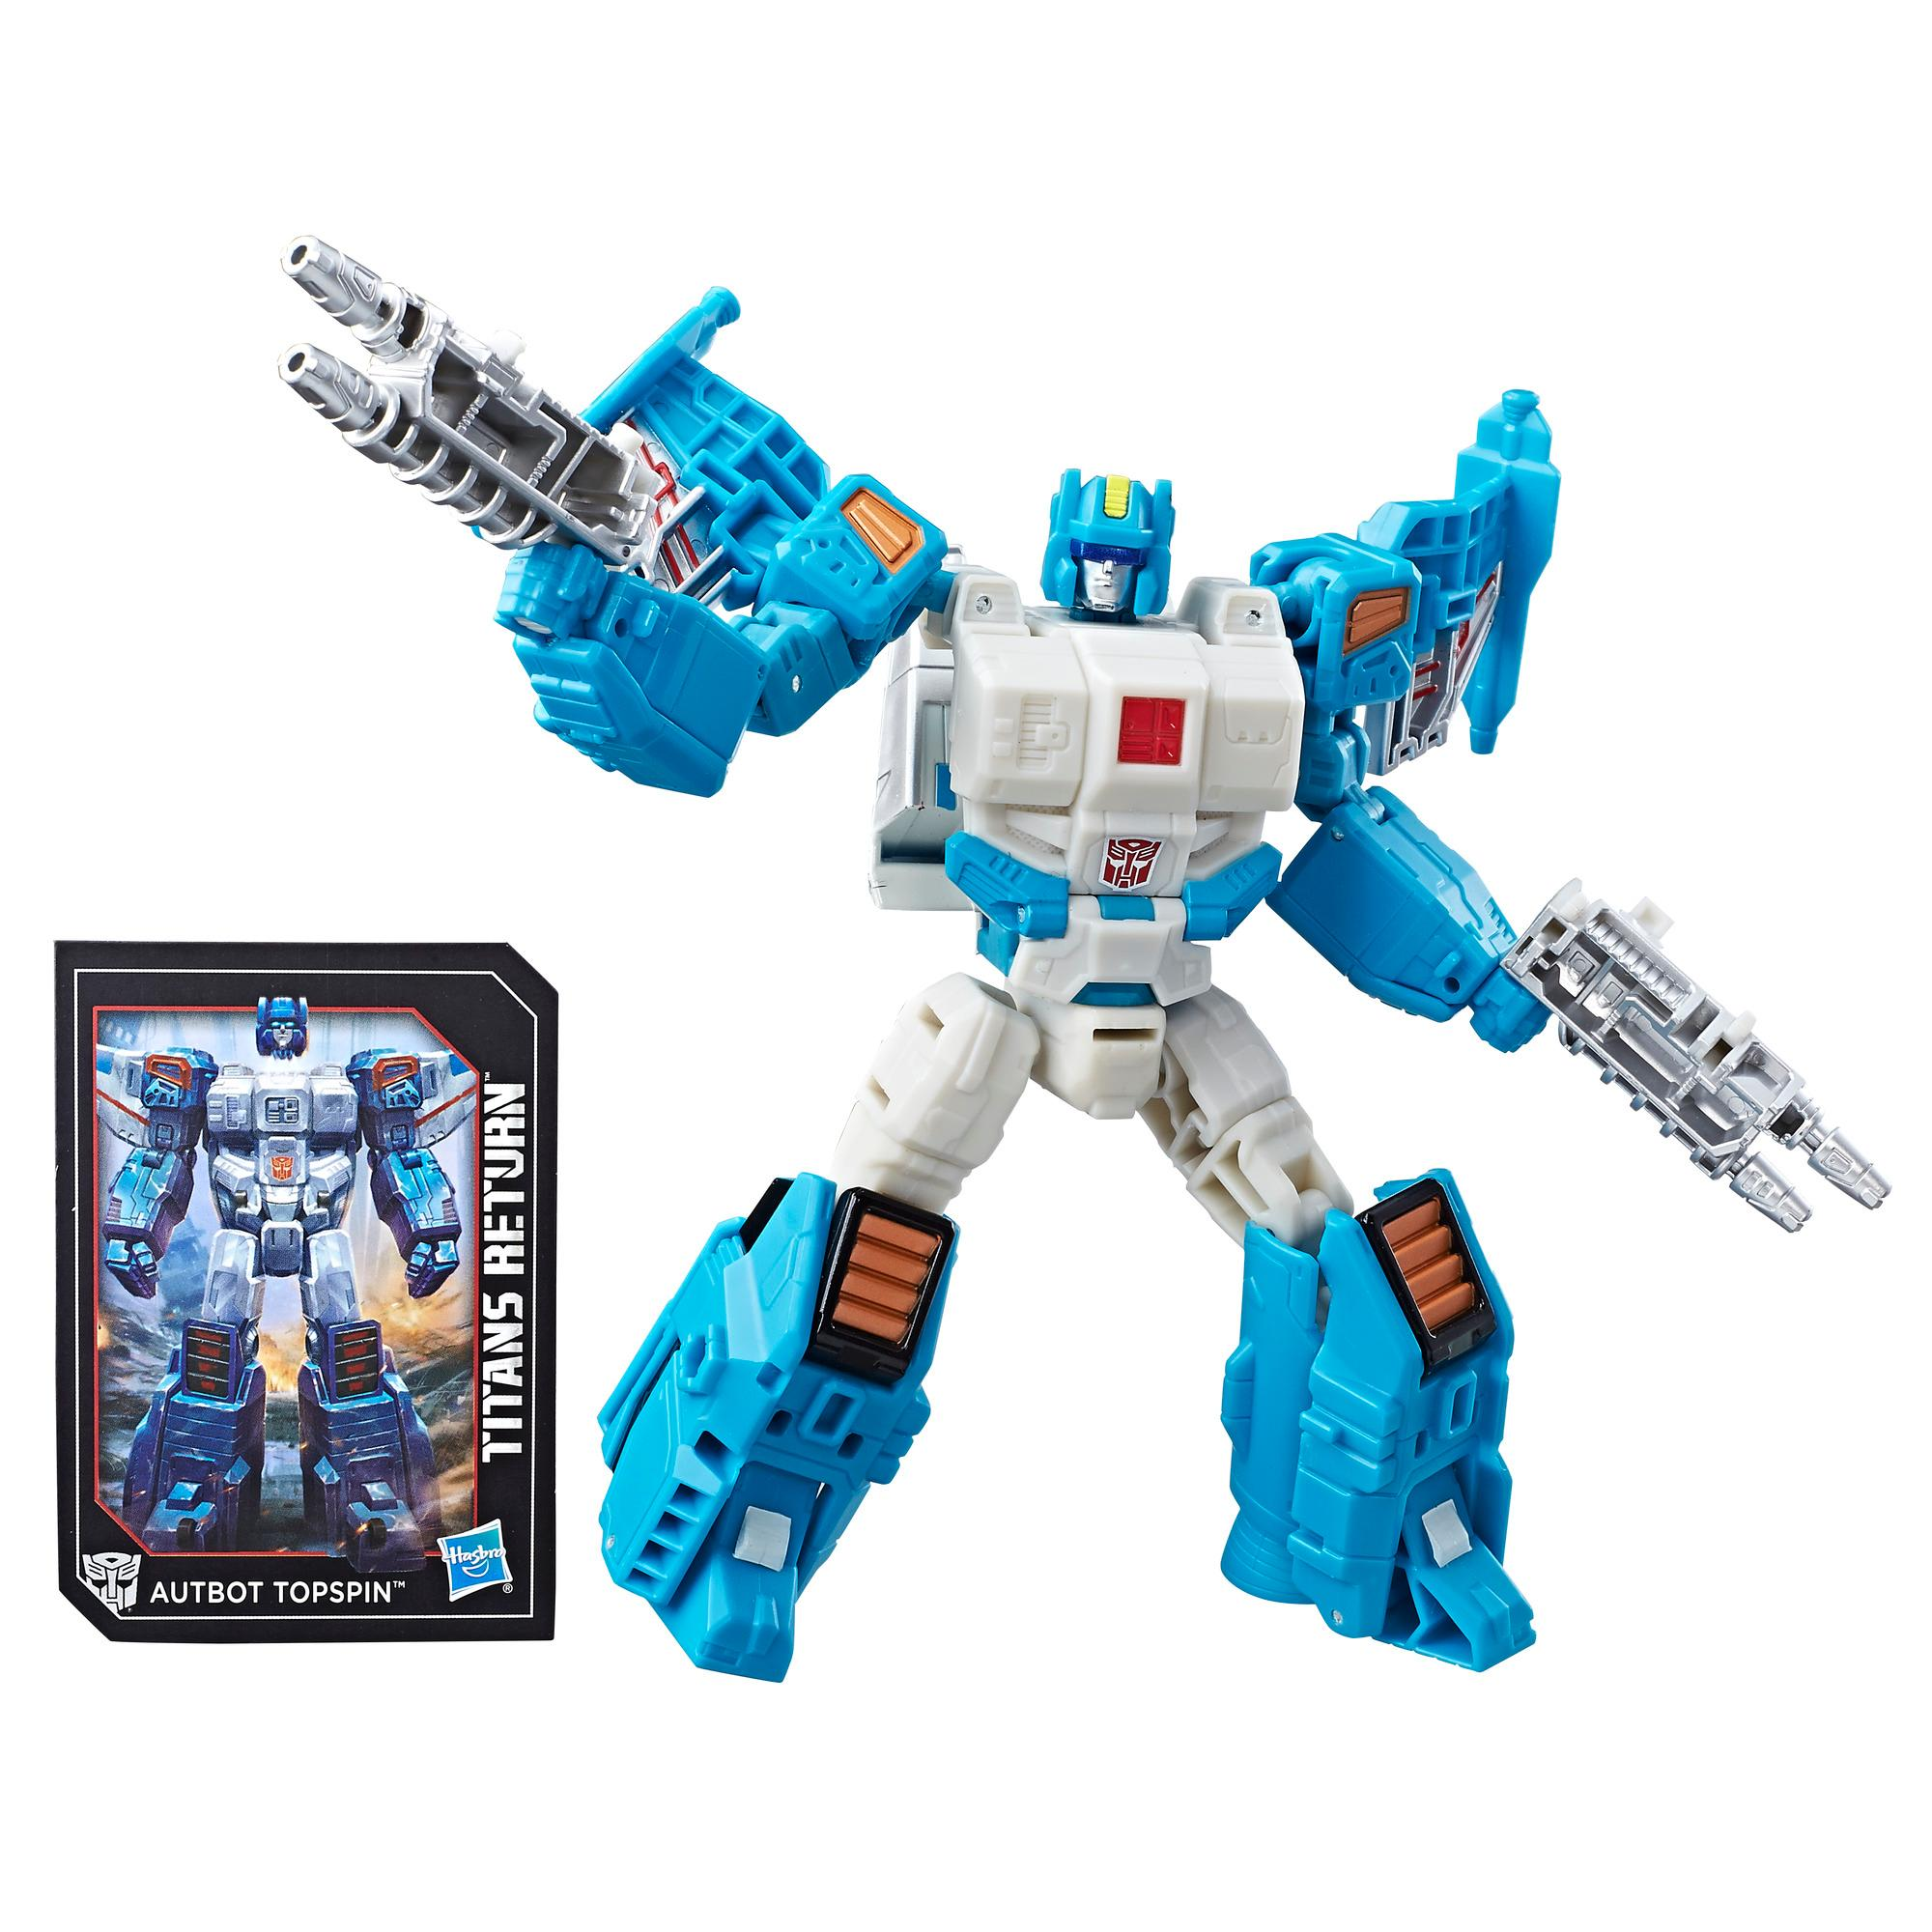 TRA GENERATIONS Deluxe Titans Return TOPSPIN